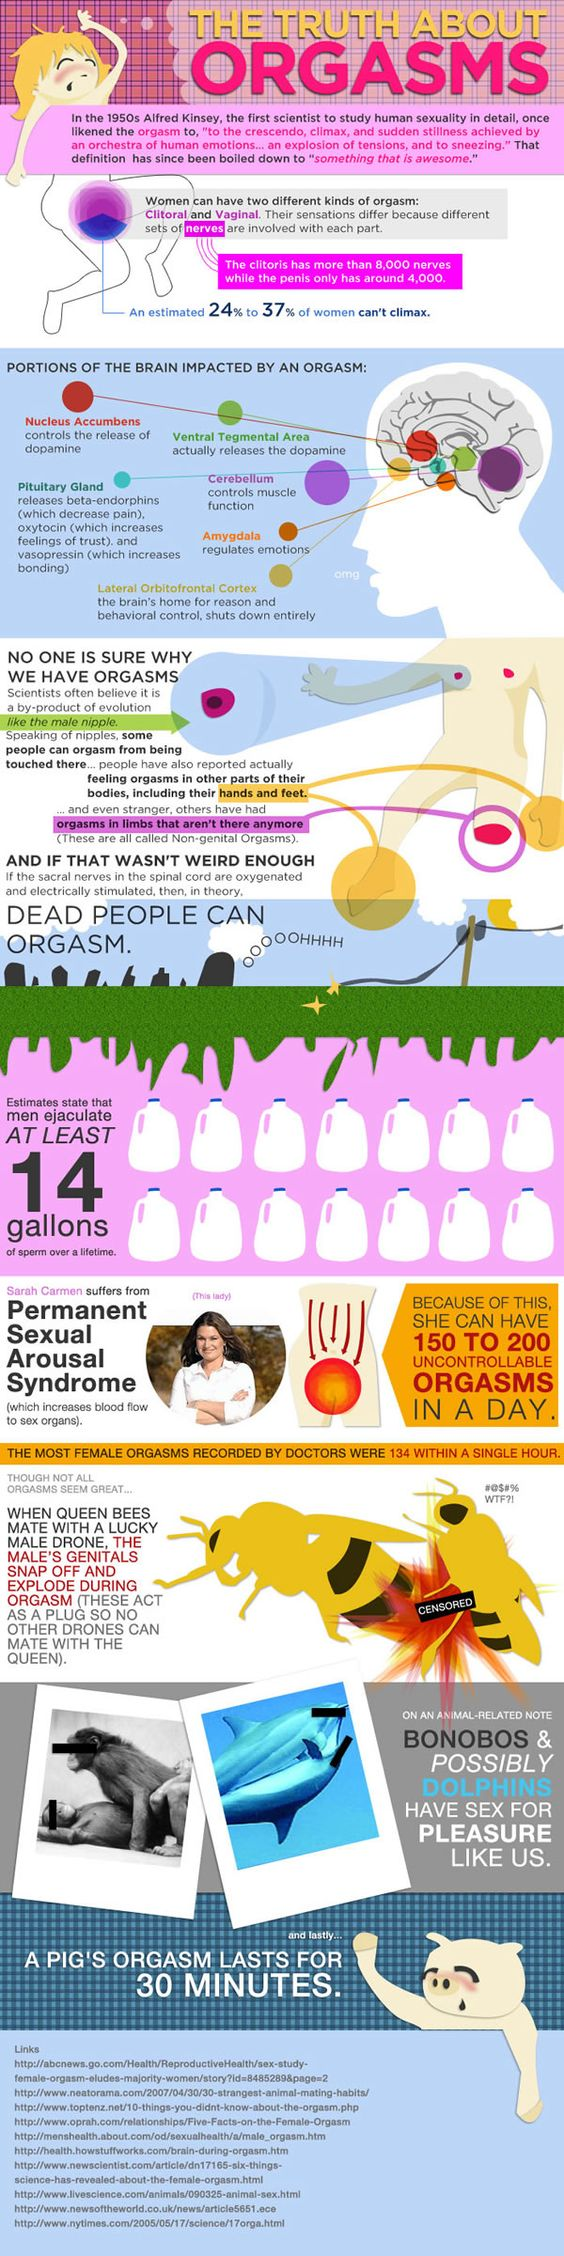 The Truth About Orgasms